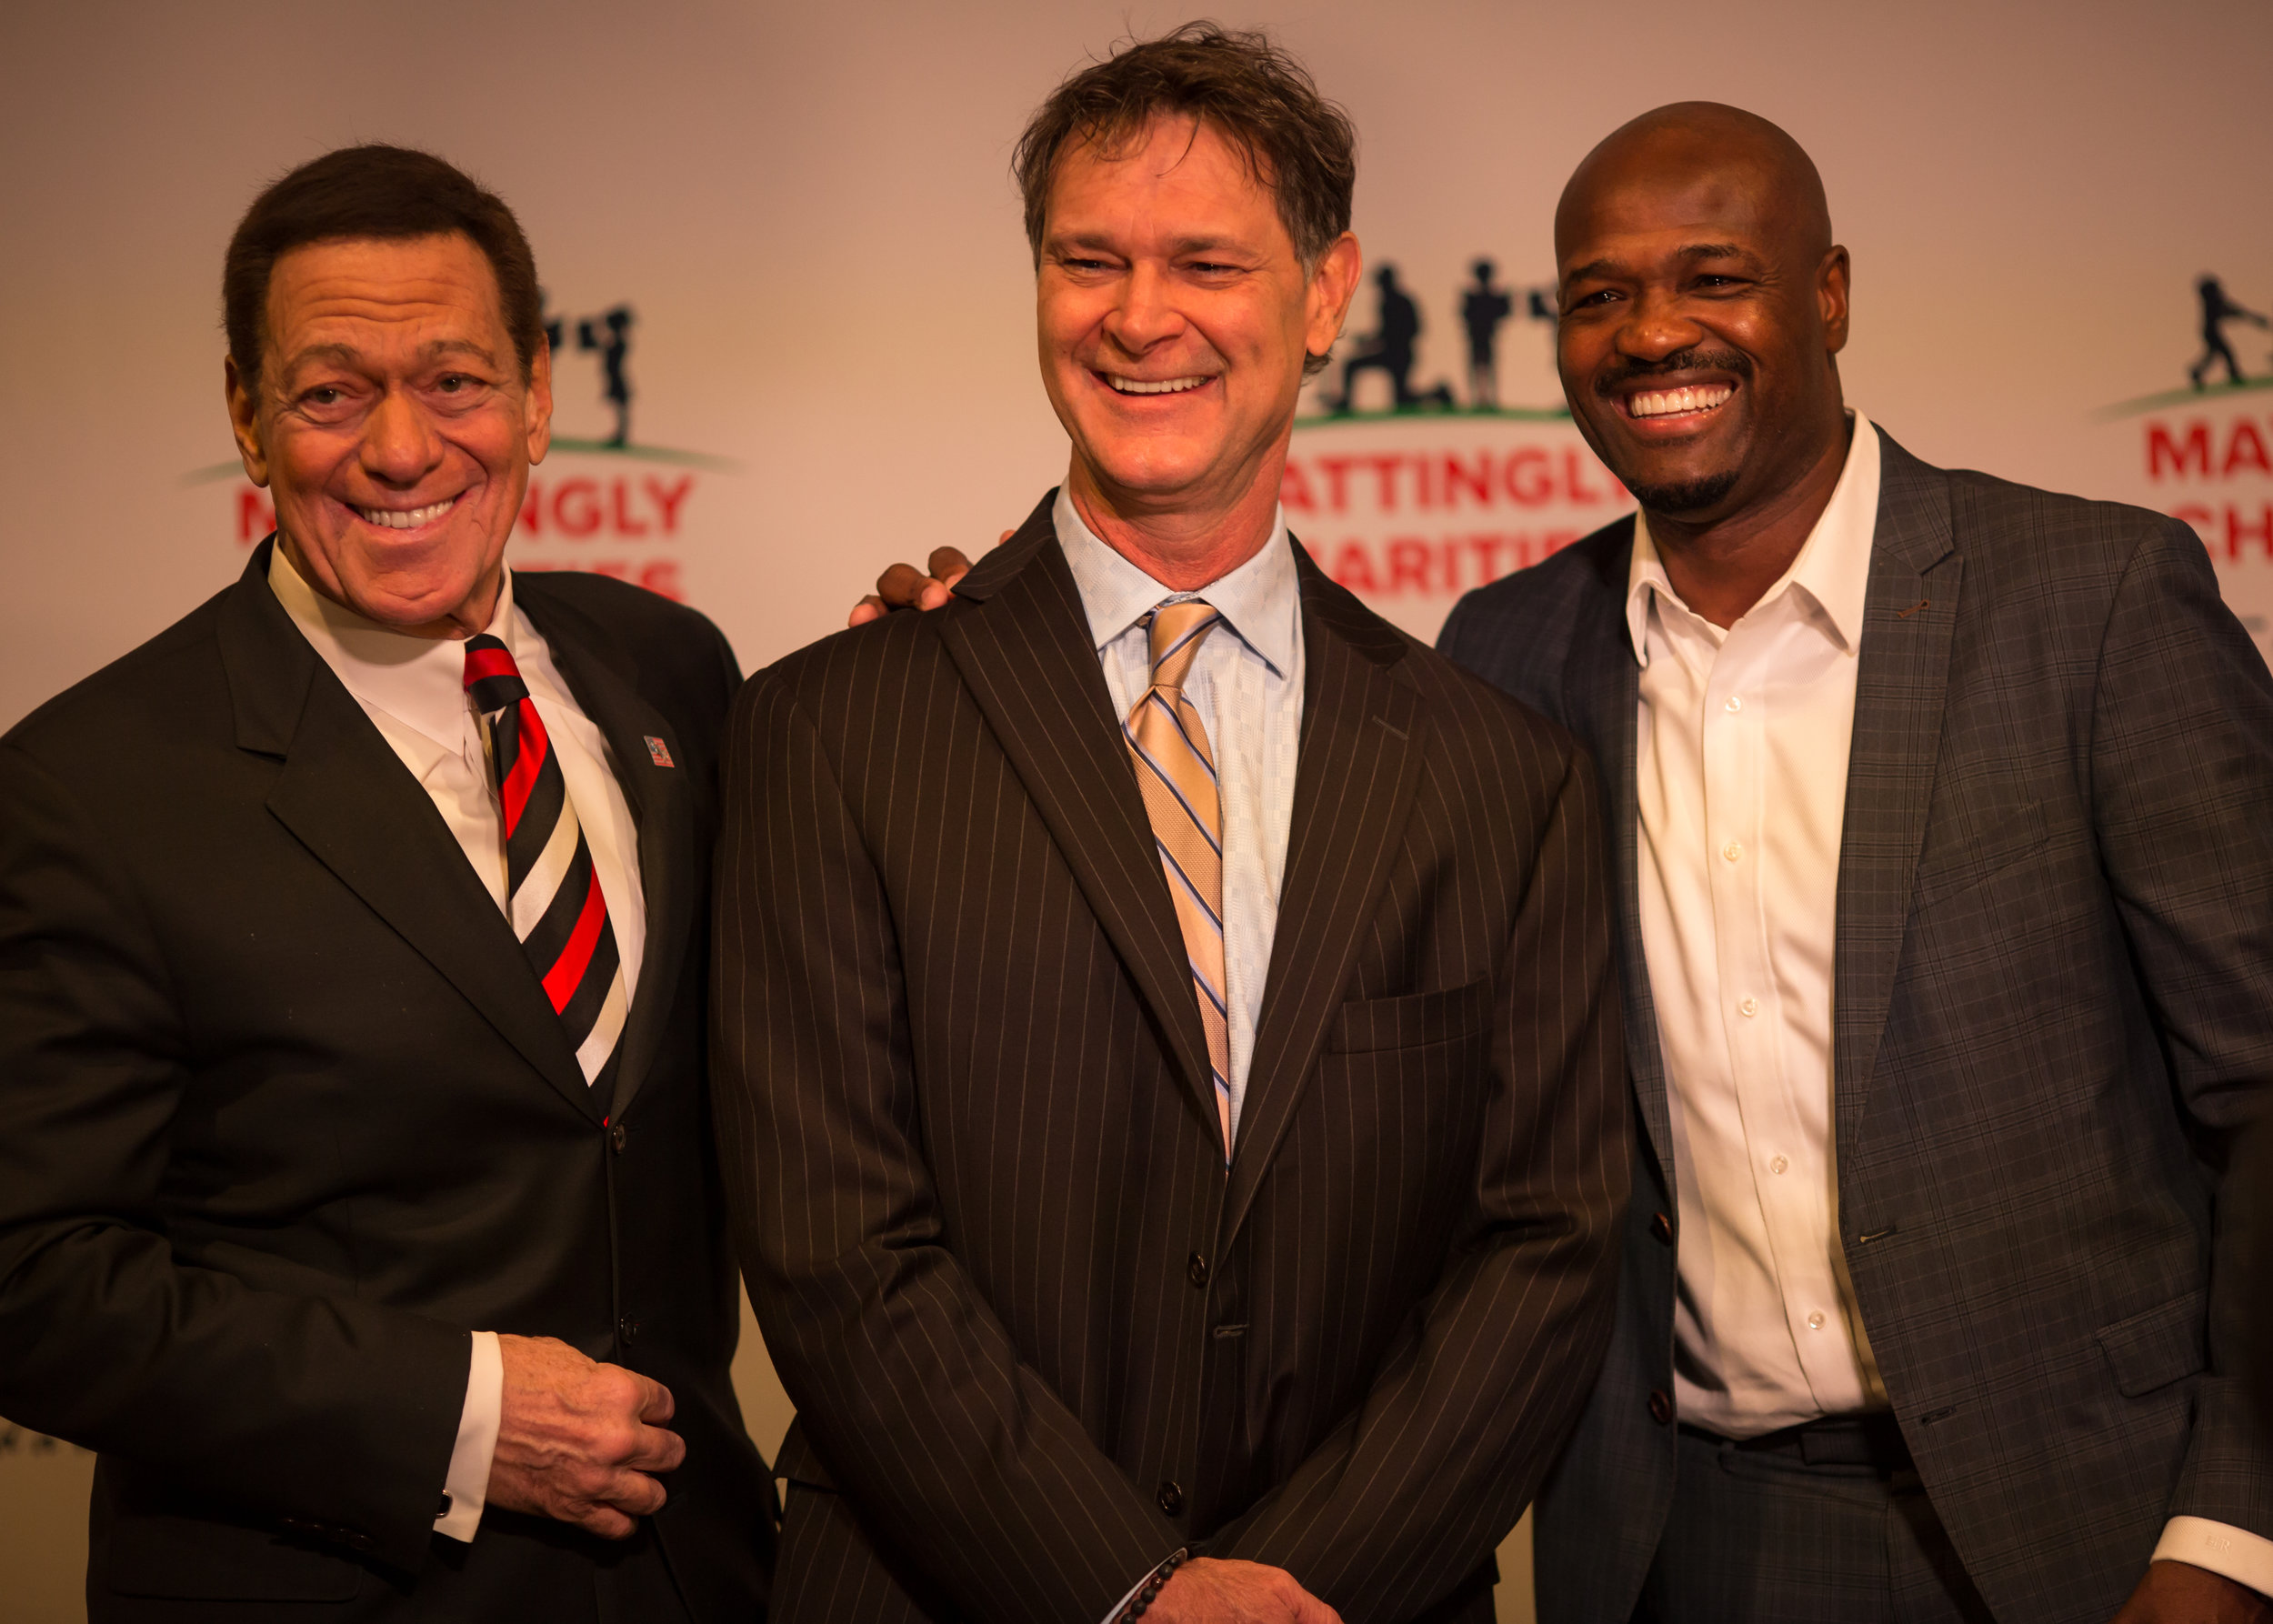 1-10-2019 Mattingly Charity Event-20.jpg